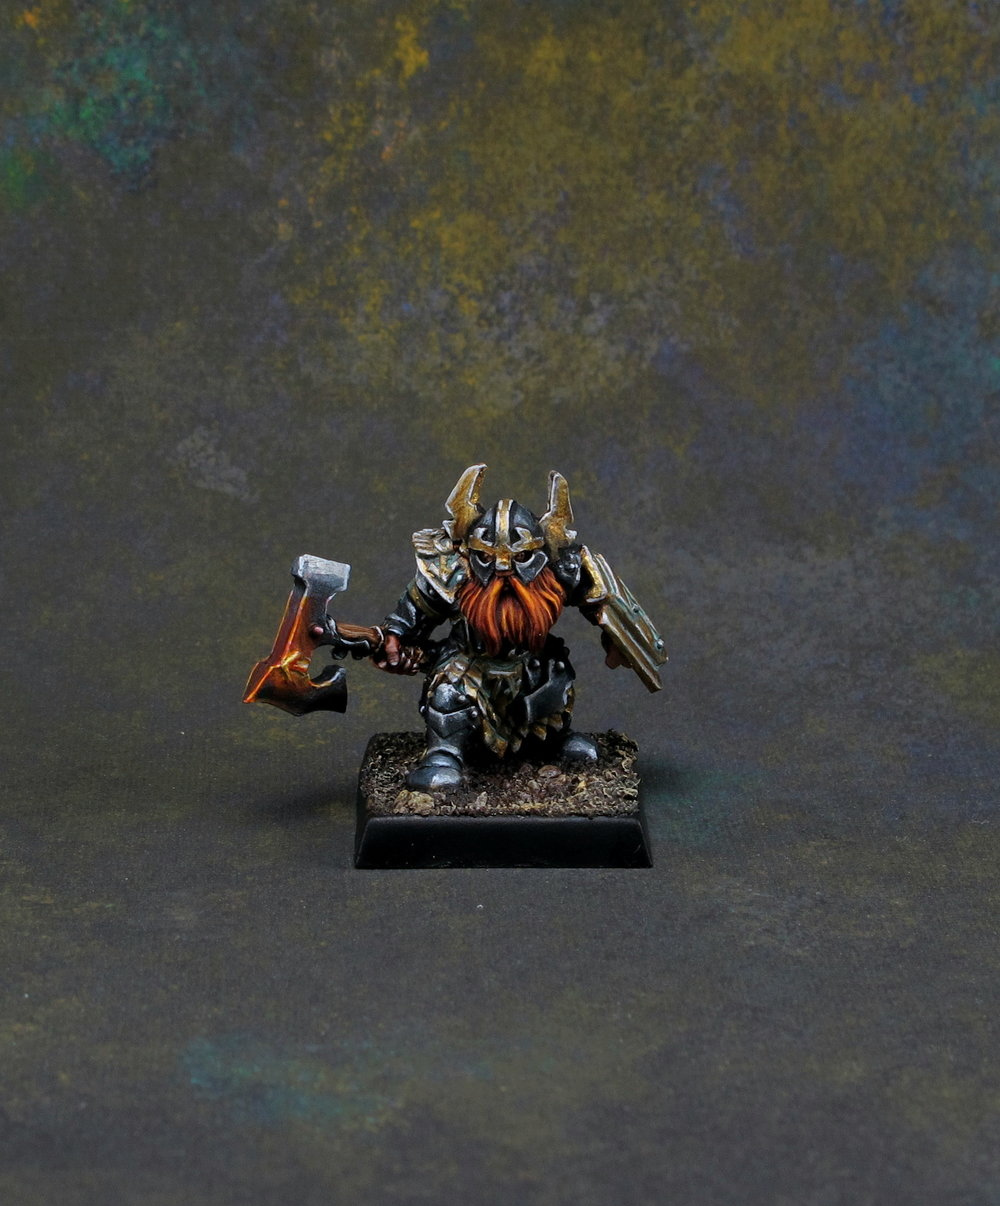 Commission Work and Award-Winning Miniature